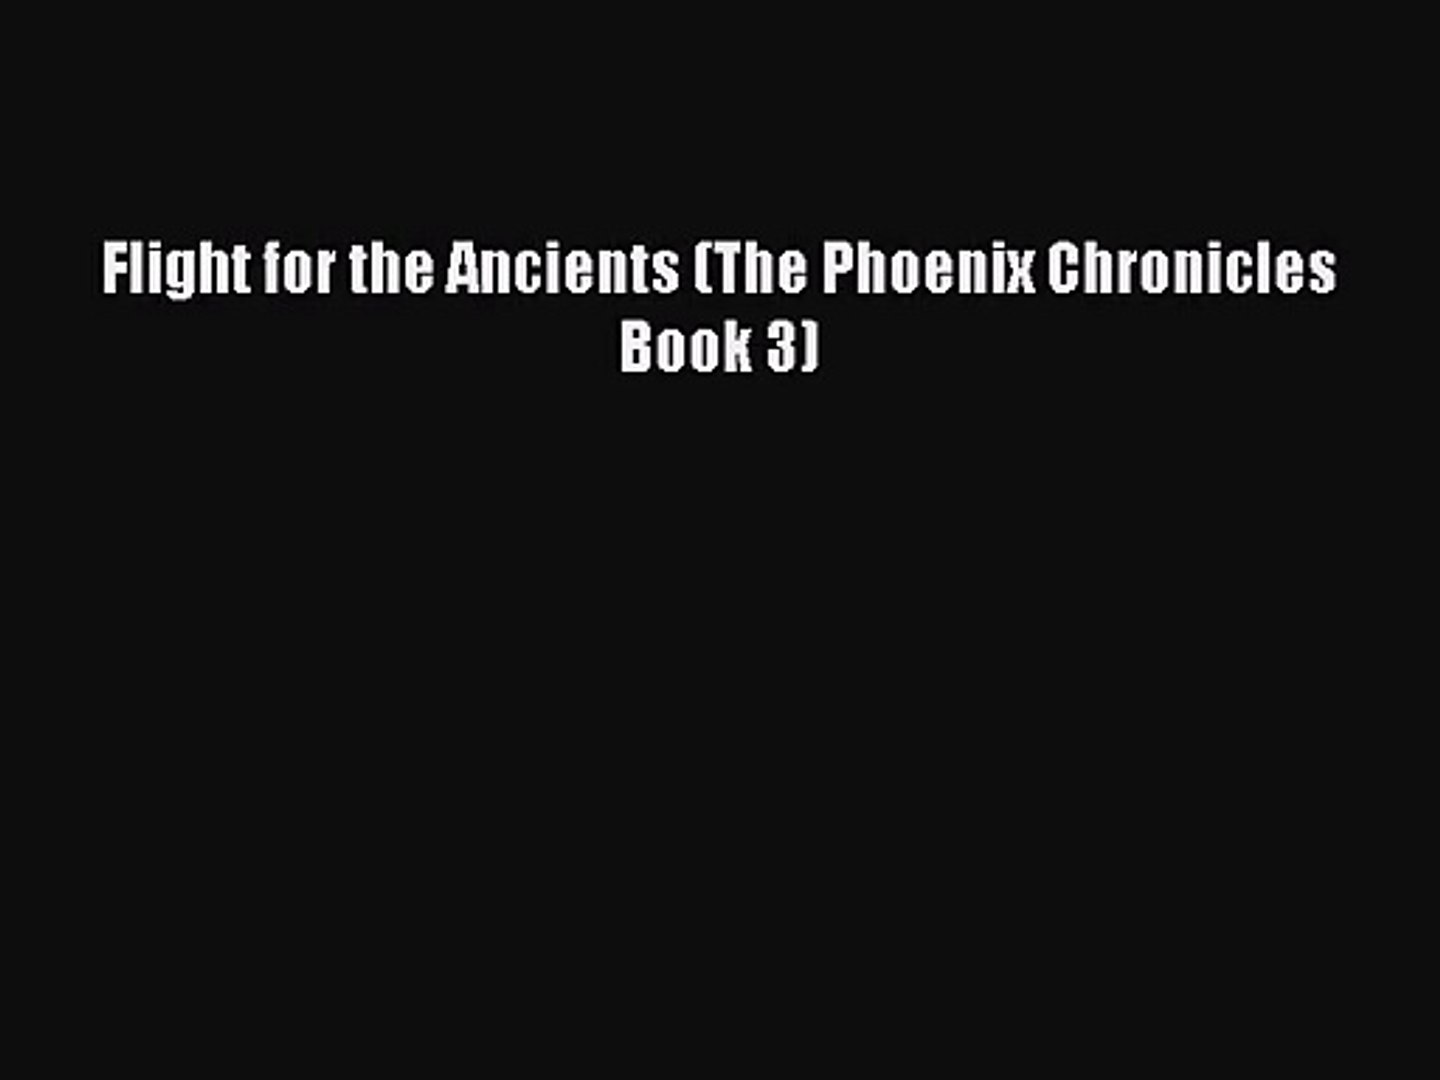 Flight for the Ancients (The Phoenix Chronicles Book 3) [Read] Online